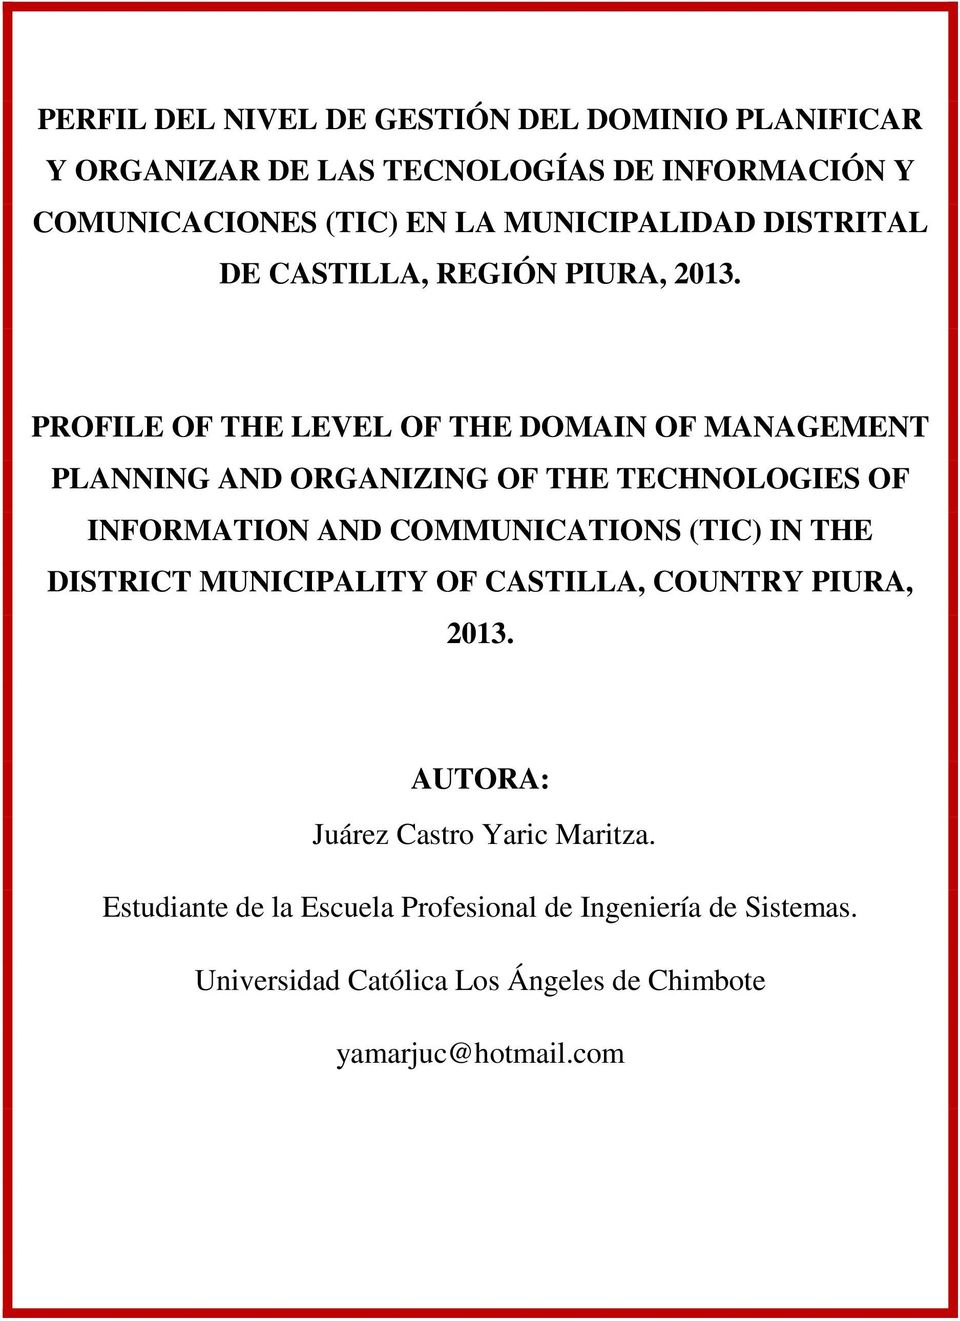 PROFILE OF THE LEVEL OF THE DOMAIN OF MANAGEMENT PLANNING AND ORGANIZING OF THE TECHNOLOGIES OF INFORMATION AND COMMUNICATIONS (TIC) IN